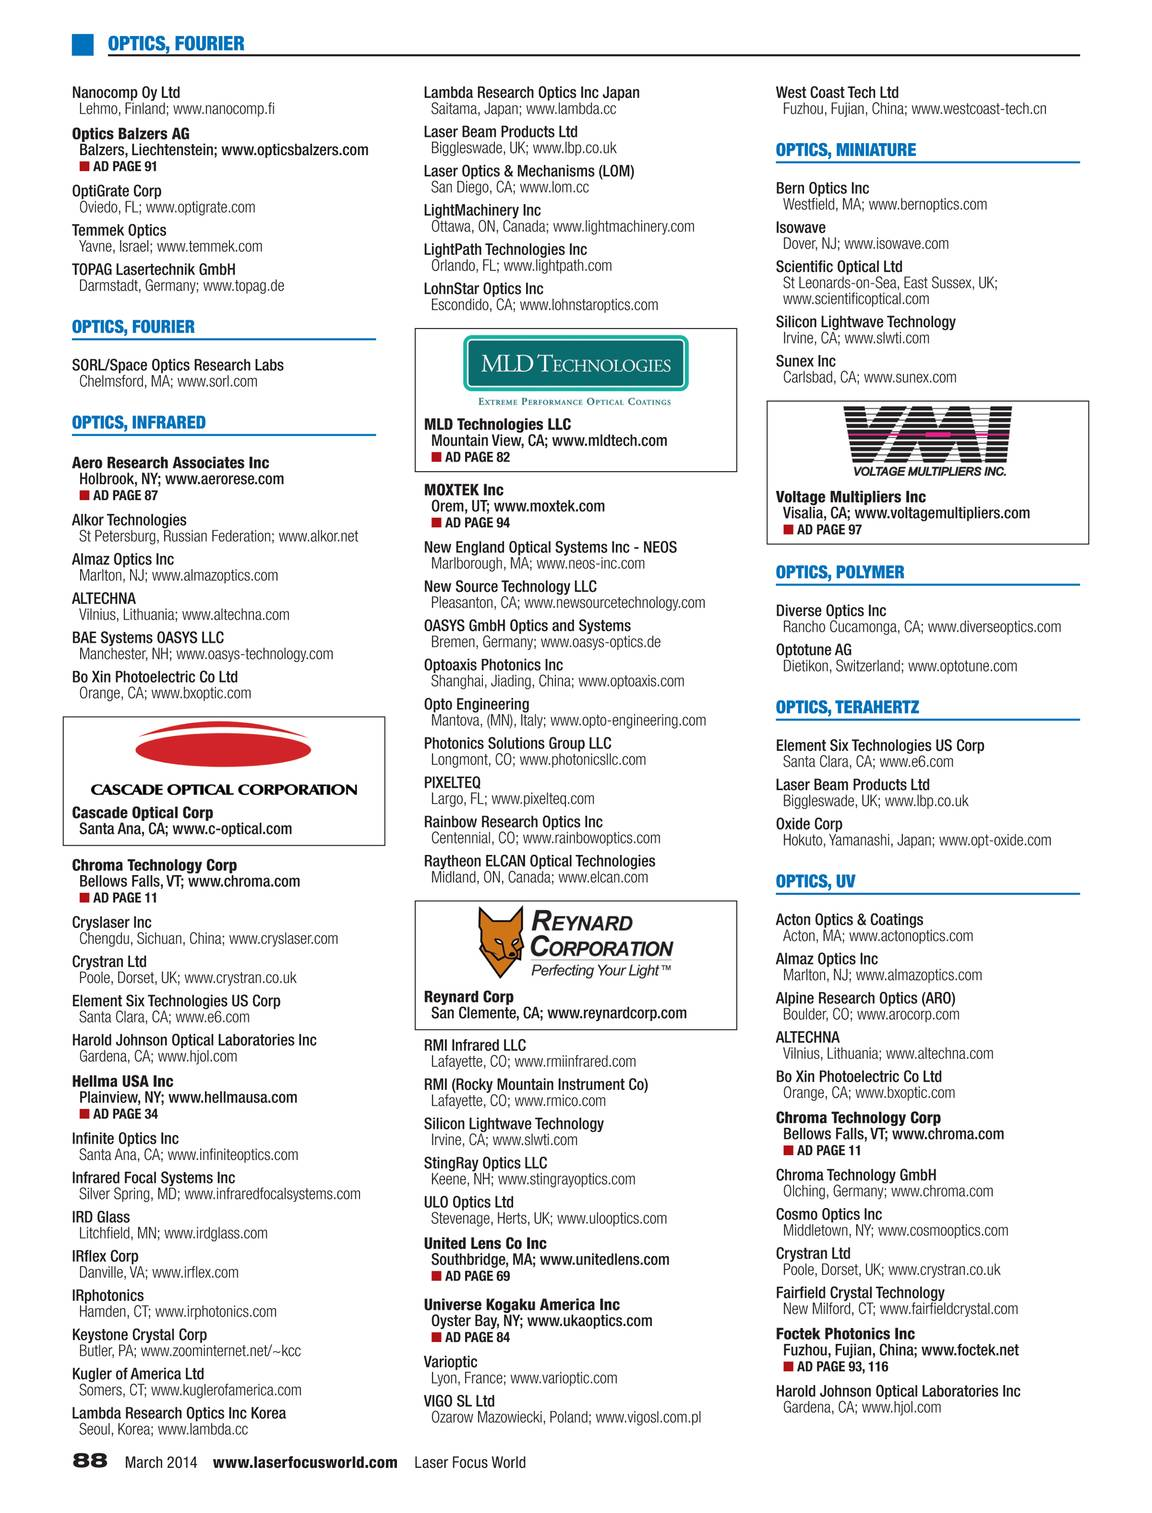 Laser Focus World - Buyers Guide 2014 - page 87